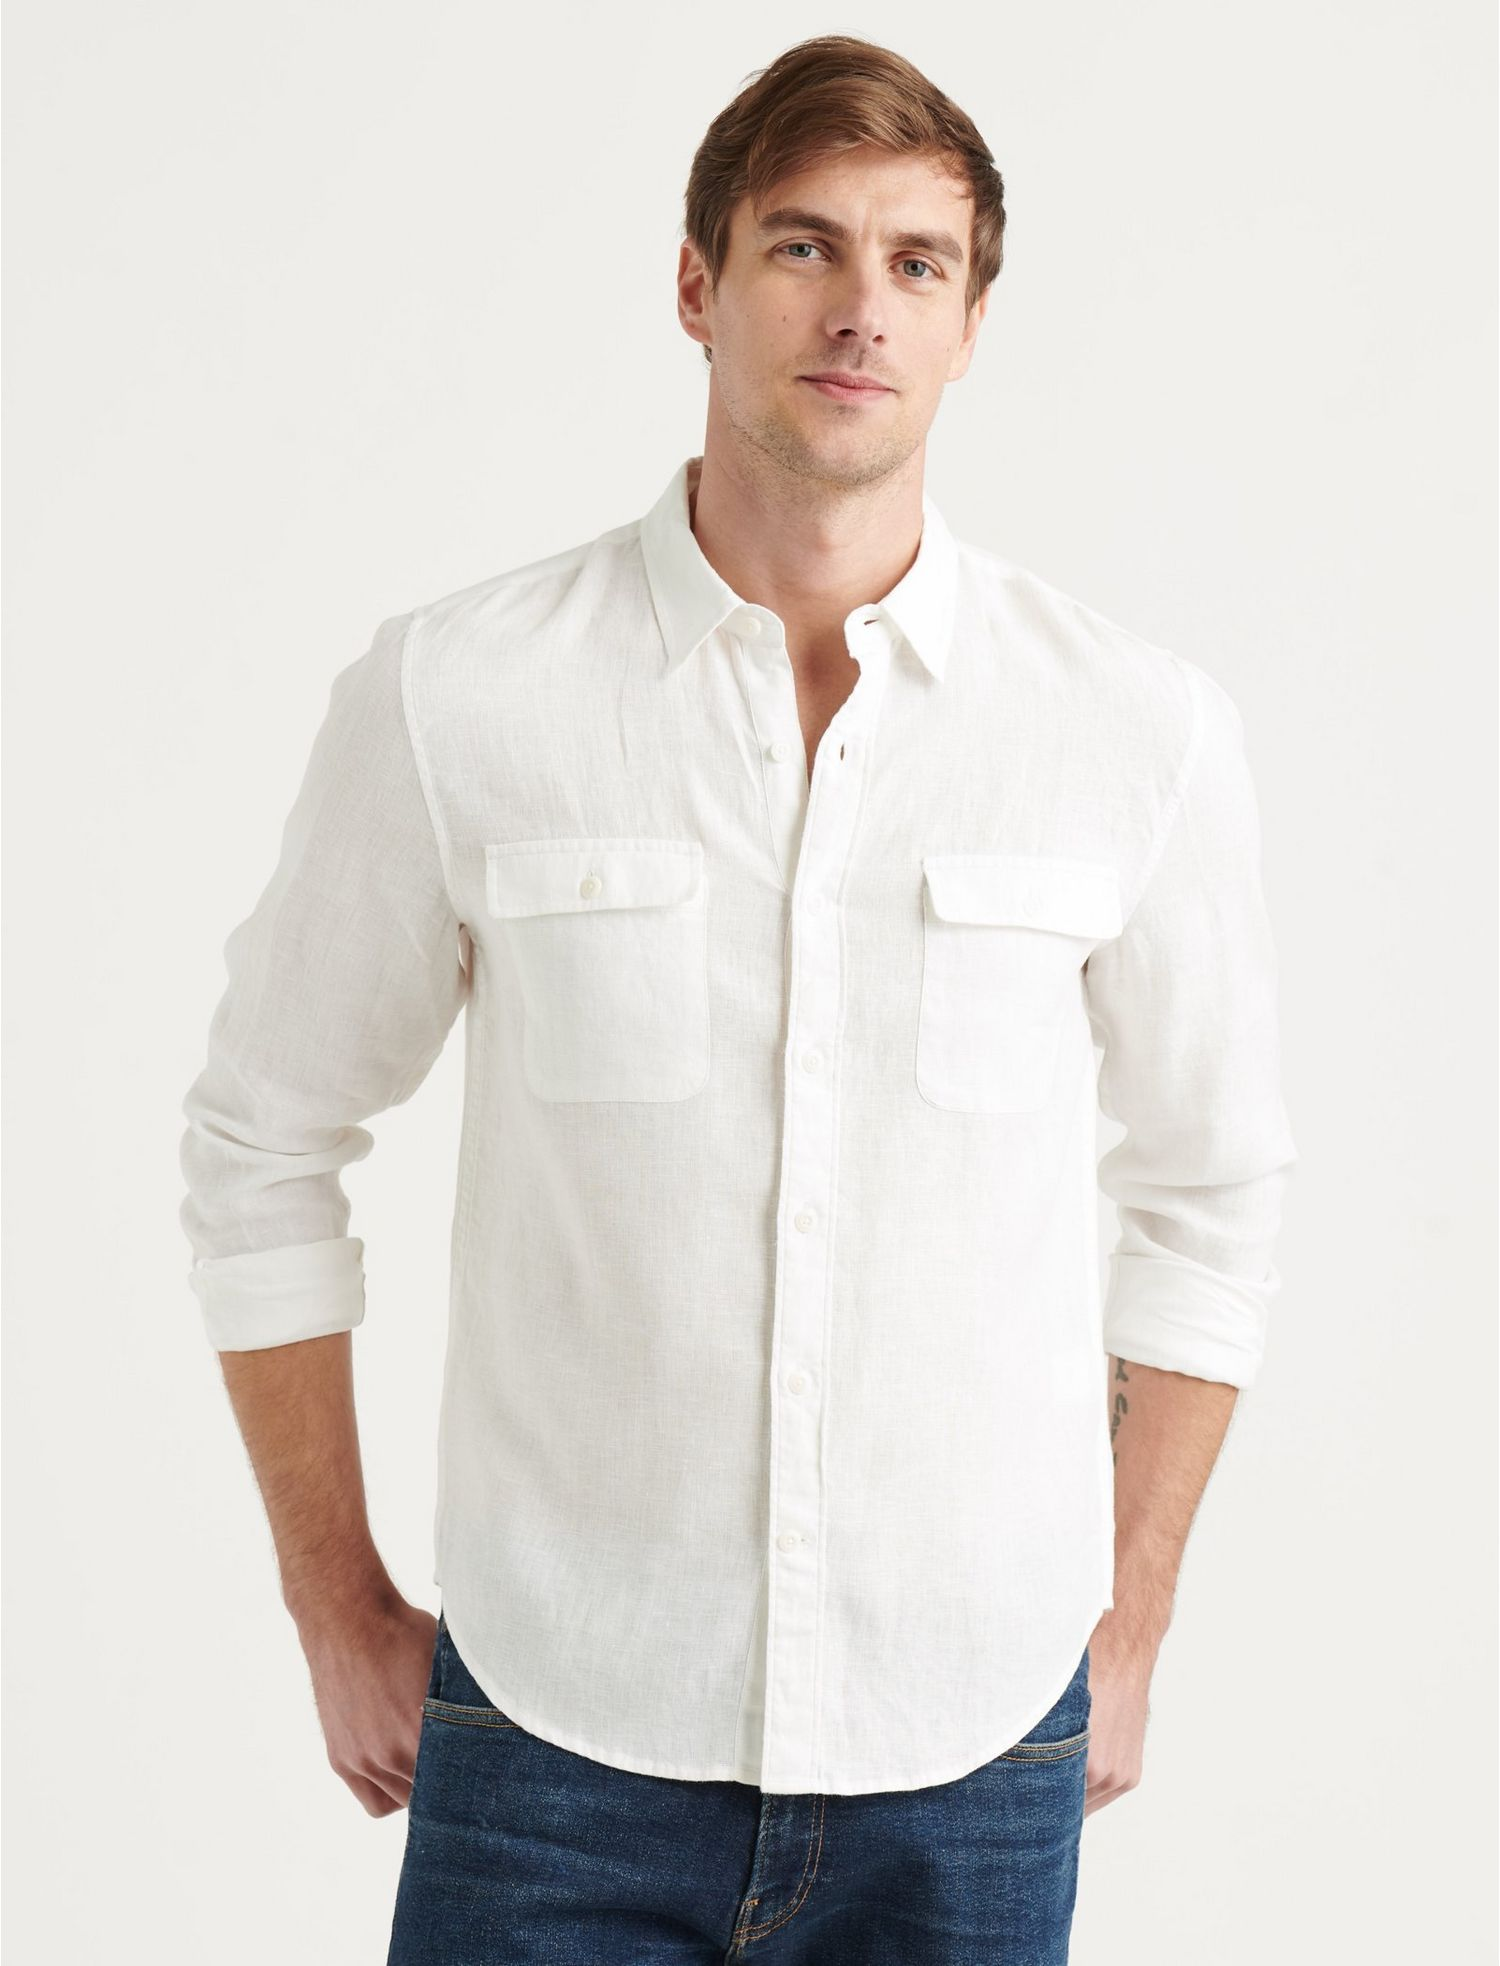 Men's Vintage Workwear – 1920s, 1930s, 1940s, 1950s Lucky Brand Linen Humboldt Workwear Shirt In White Size Small $35.00 AT vintagedancer.com